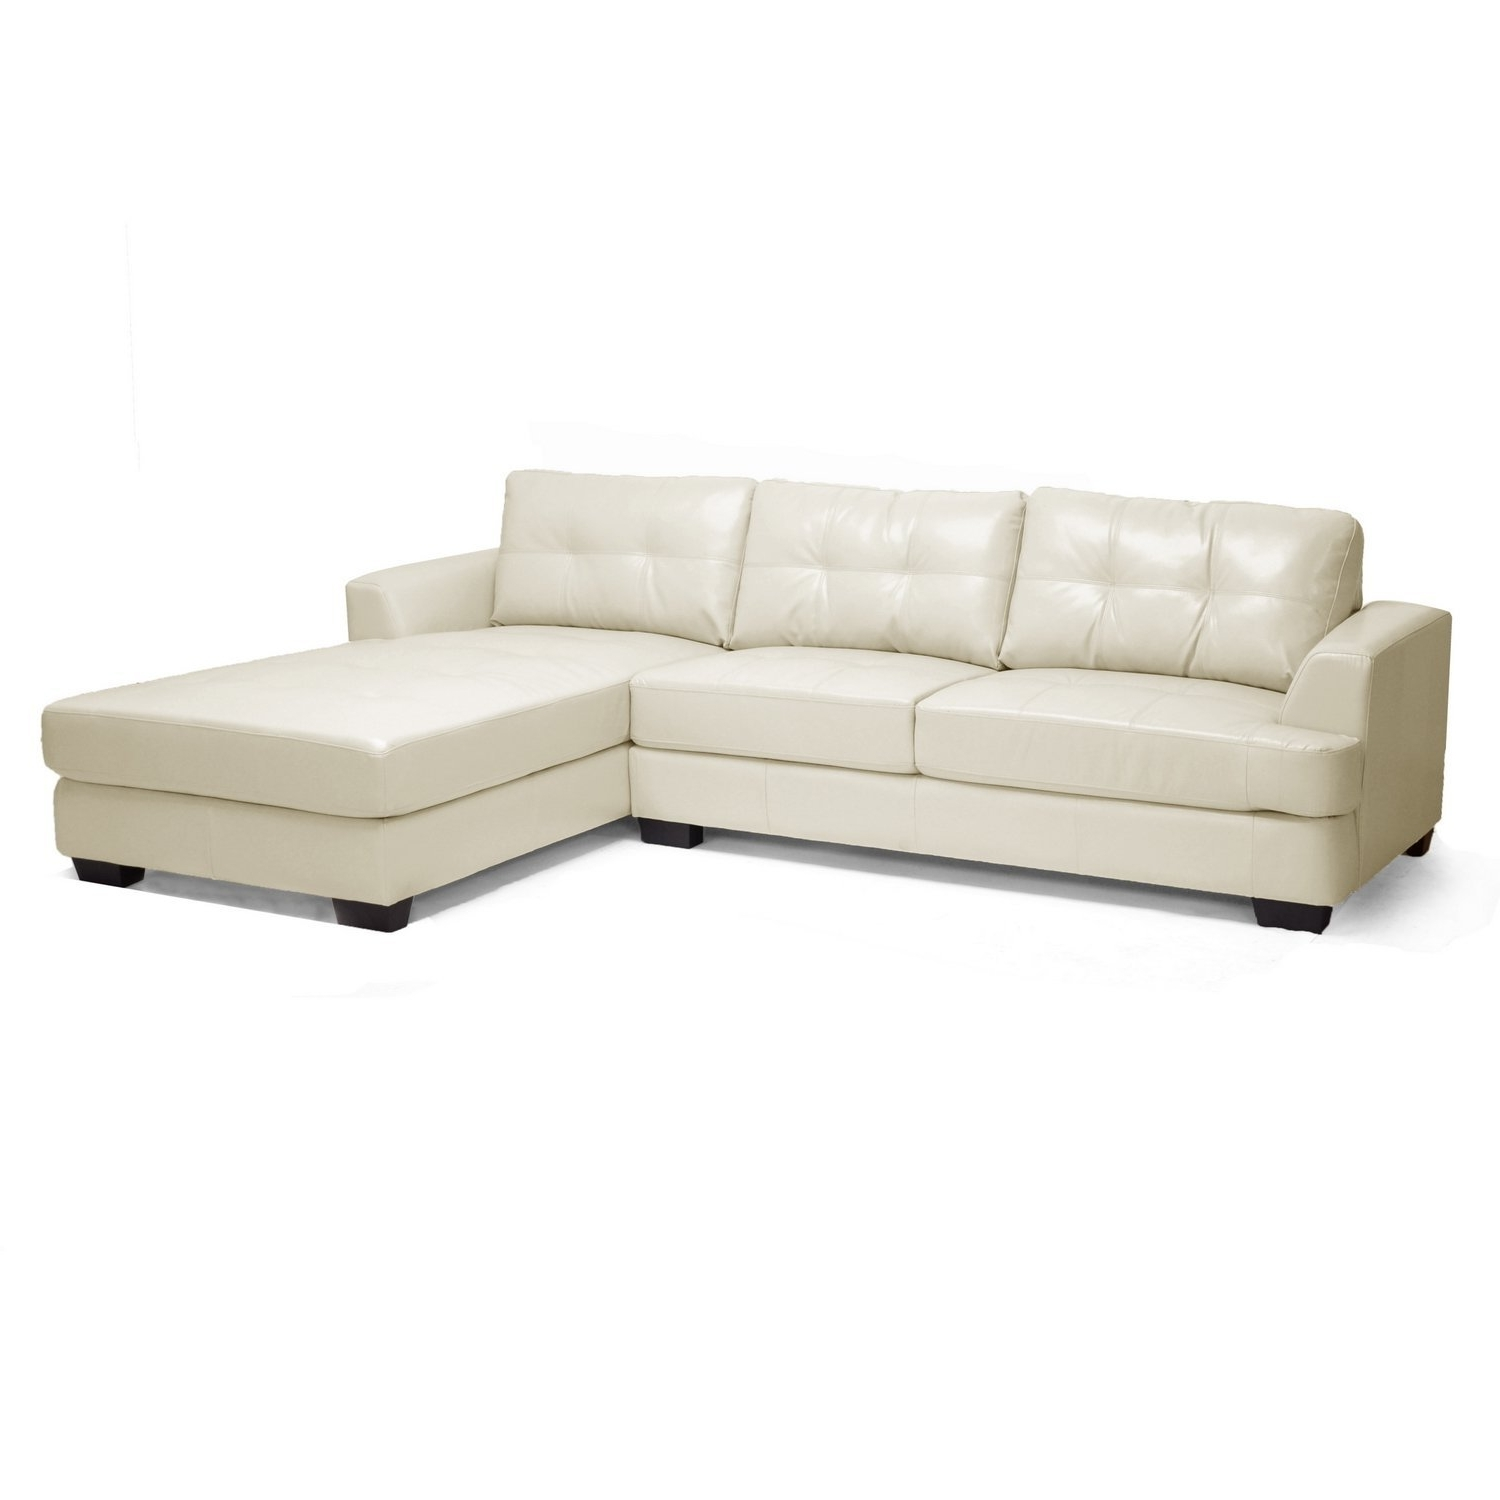 Most Recently Released Cream Chaise Sofas With Regard To Amazon: Baxton Studio Dobson Leather Modern Sectional Sofa (View 13 of 15)